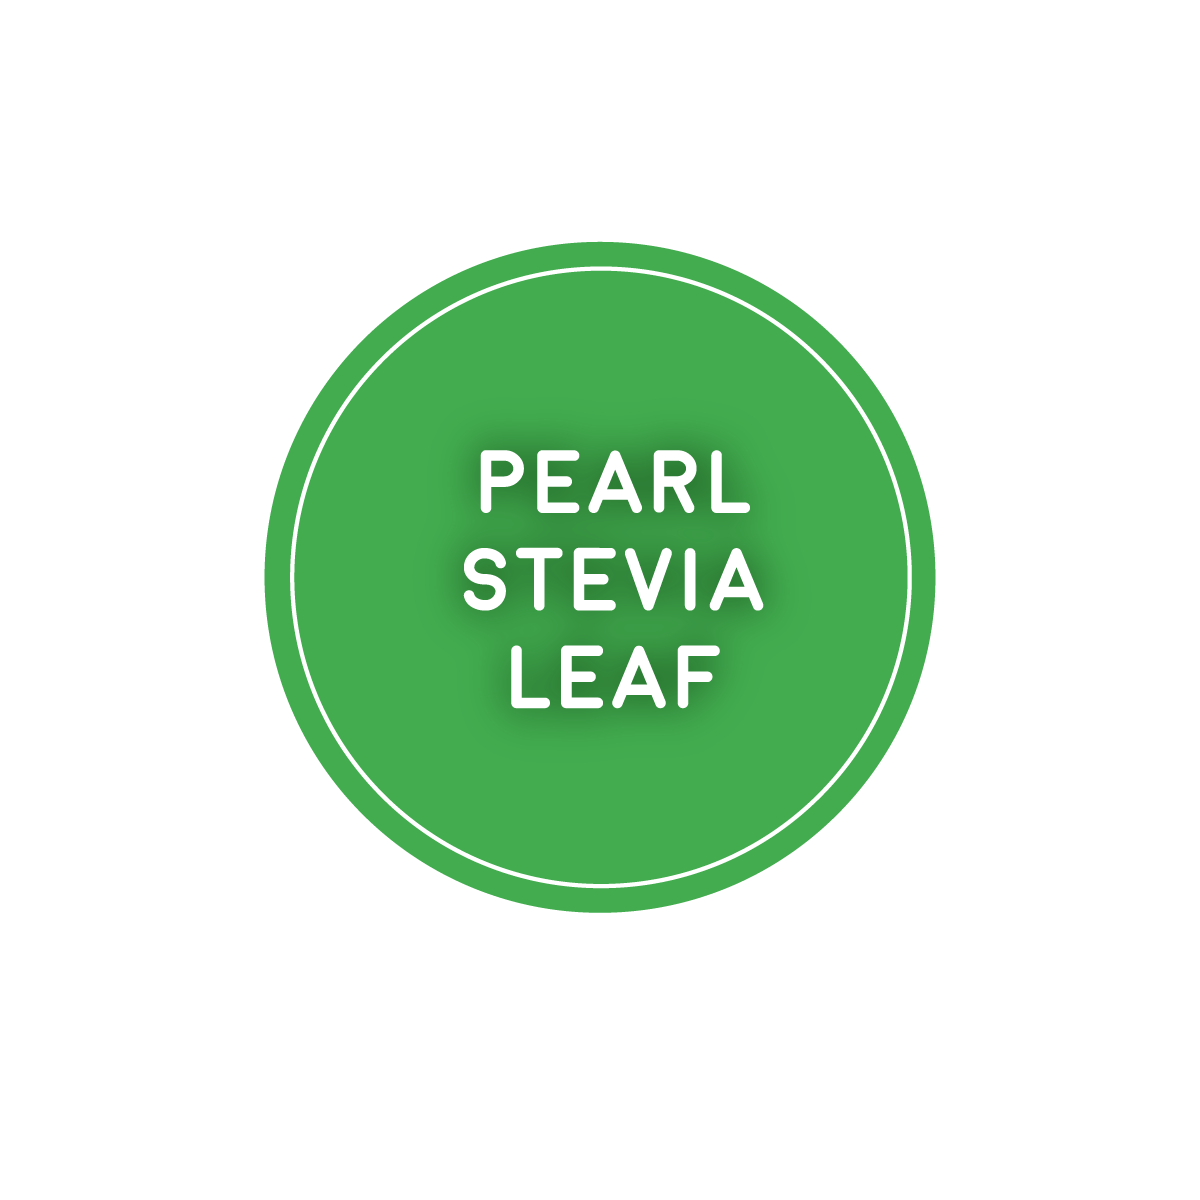 stevia-label-01.png